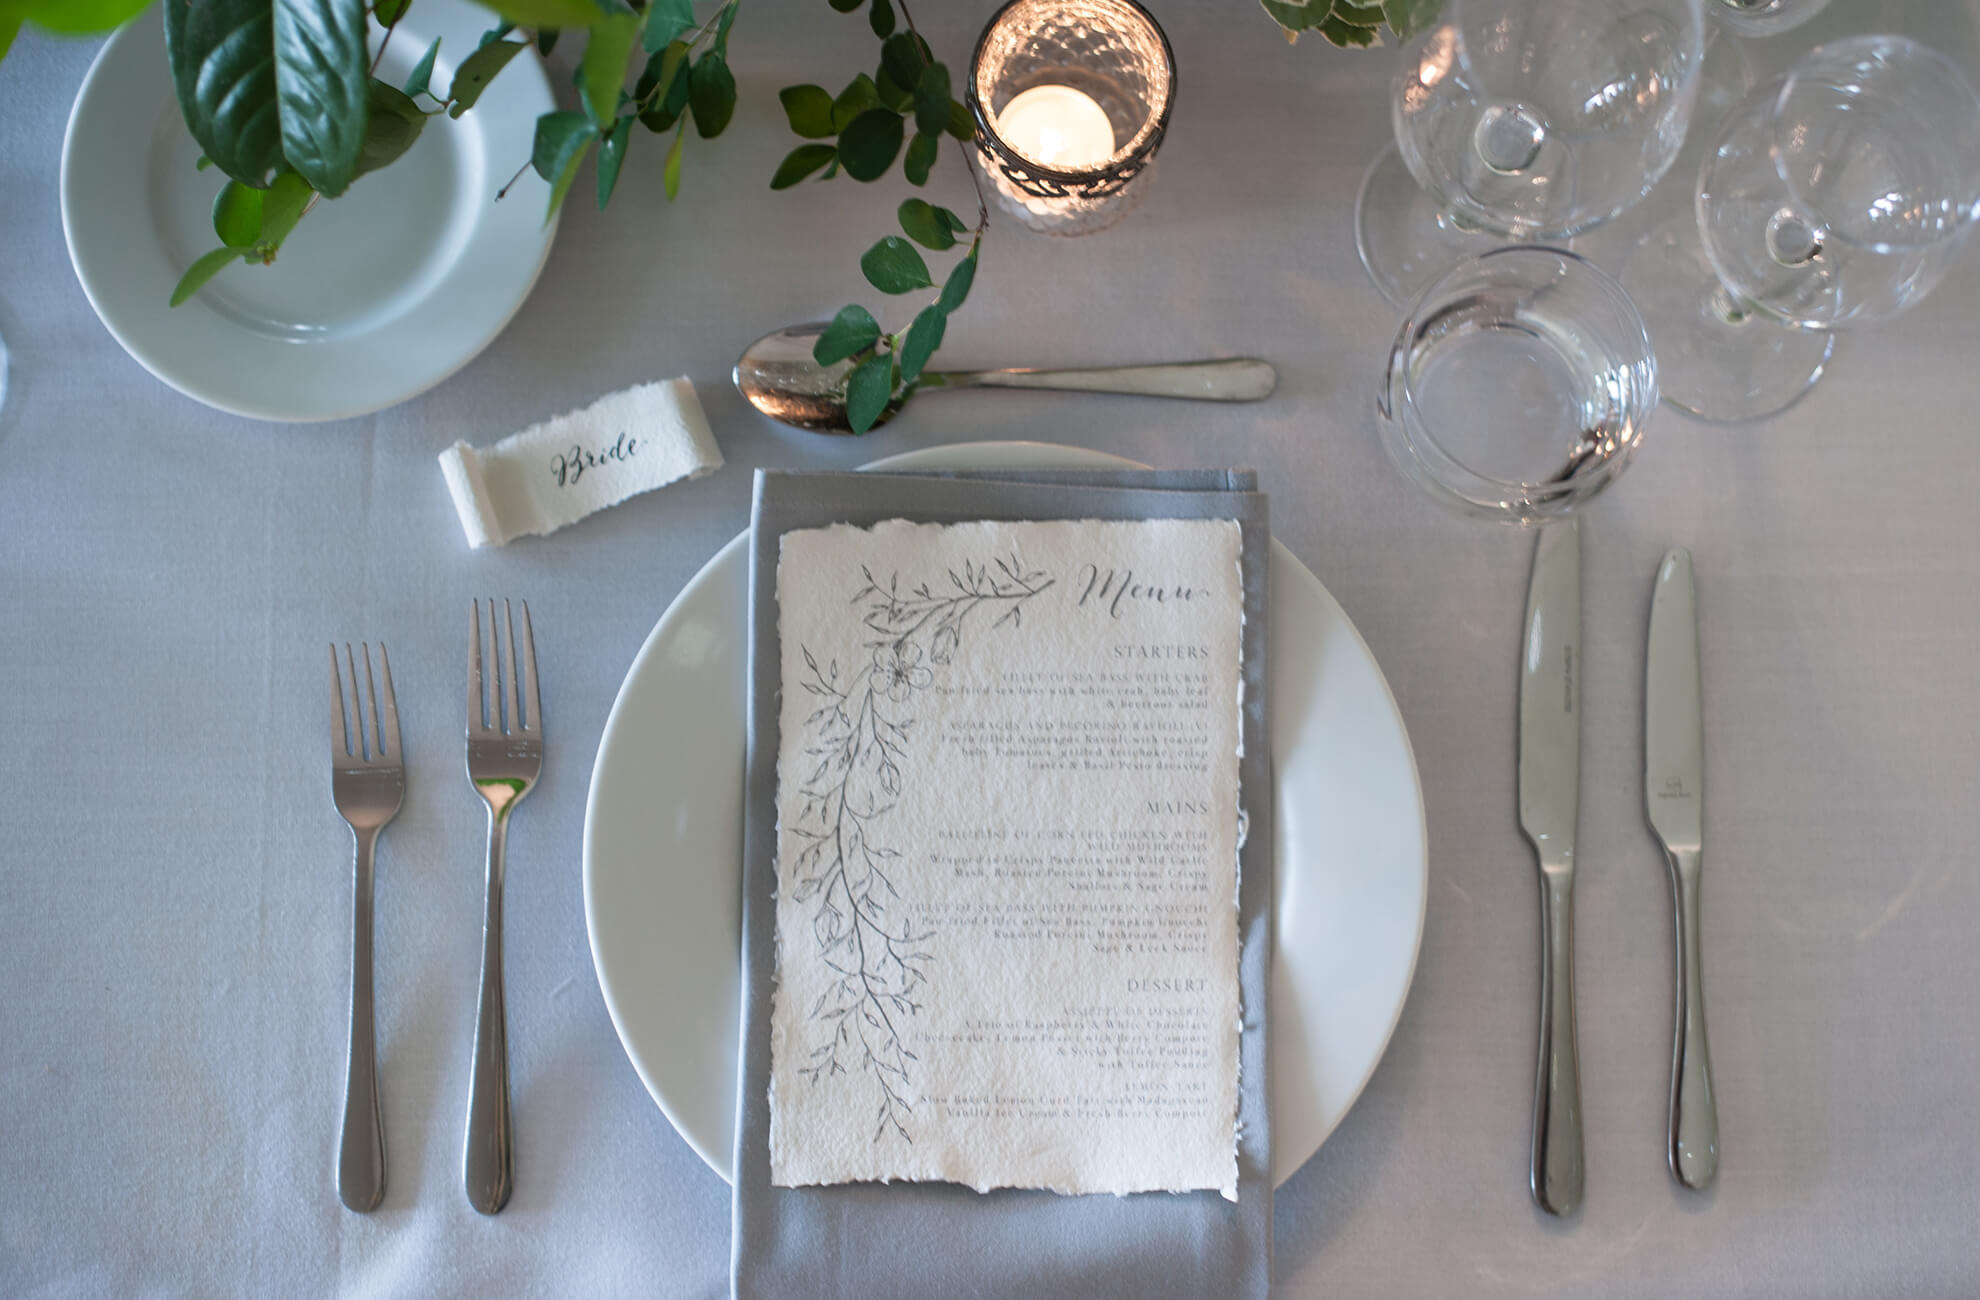 Calligraphy name cards and menus sit on top of grey serviettes for an elegant wedding table place setting at Combermere Abbey